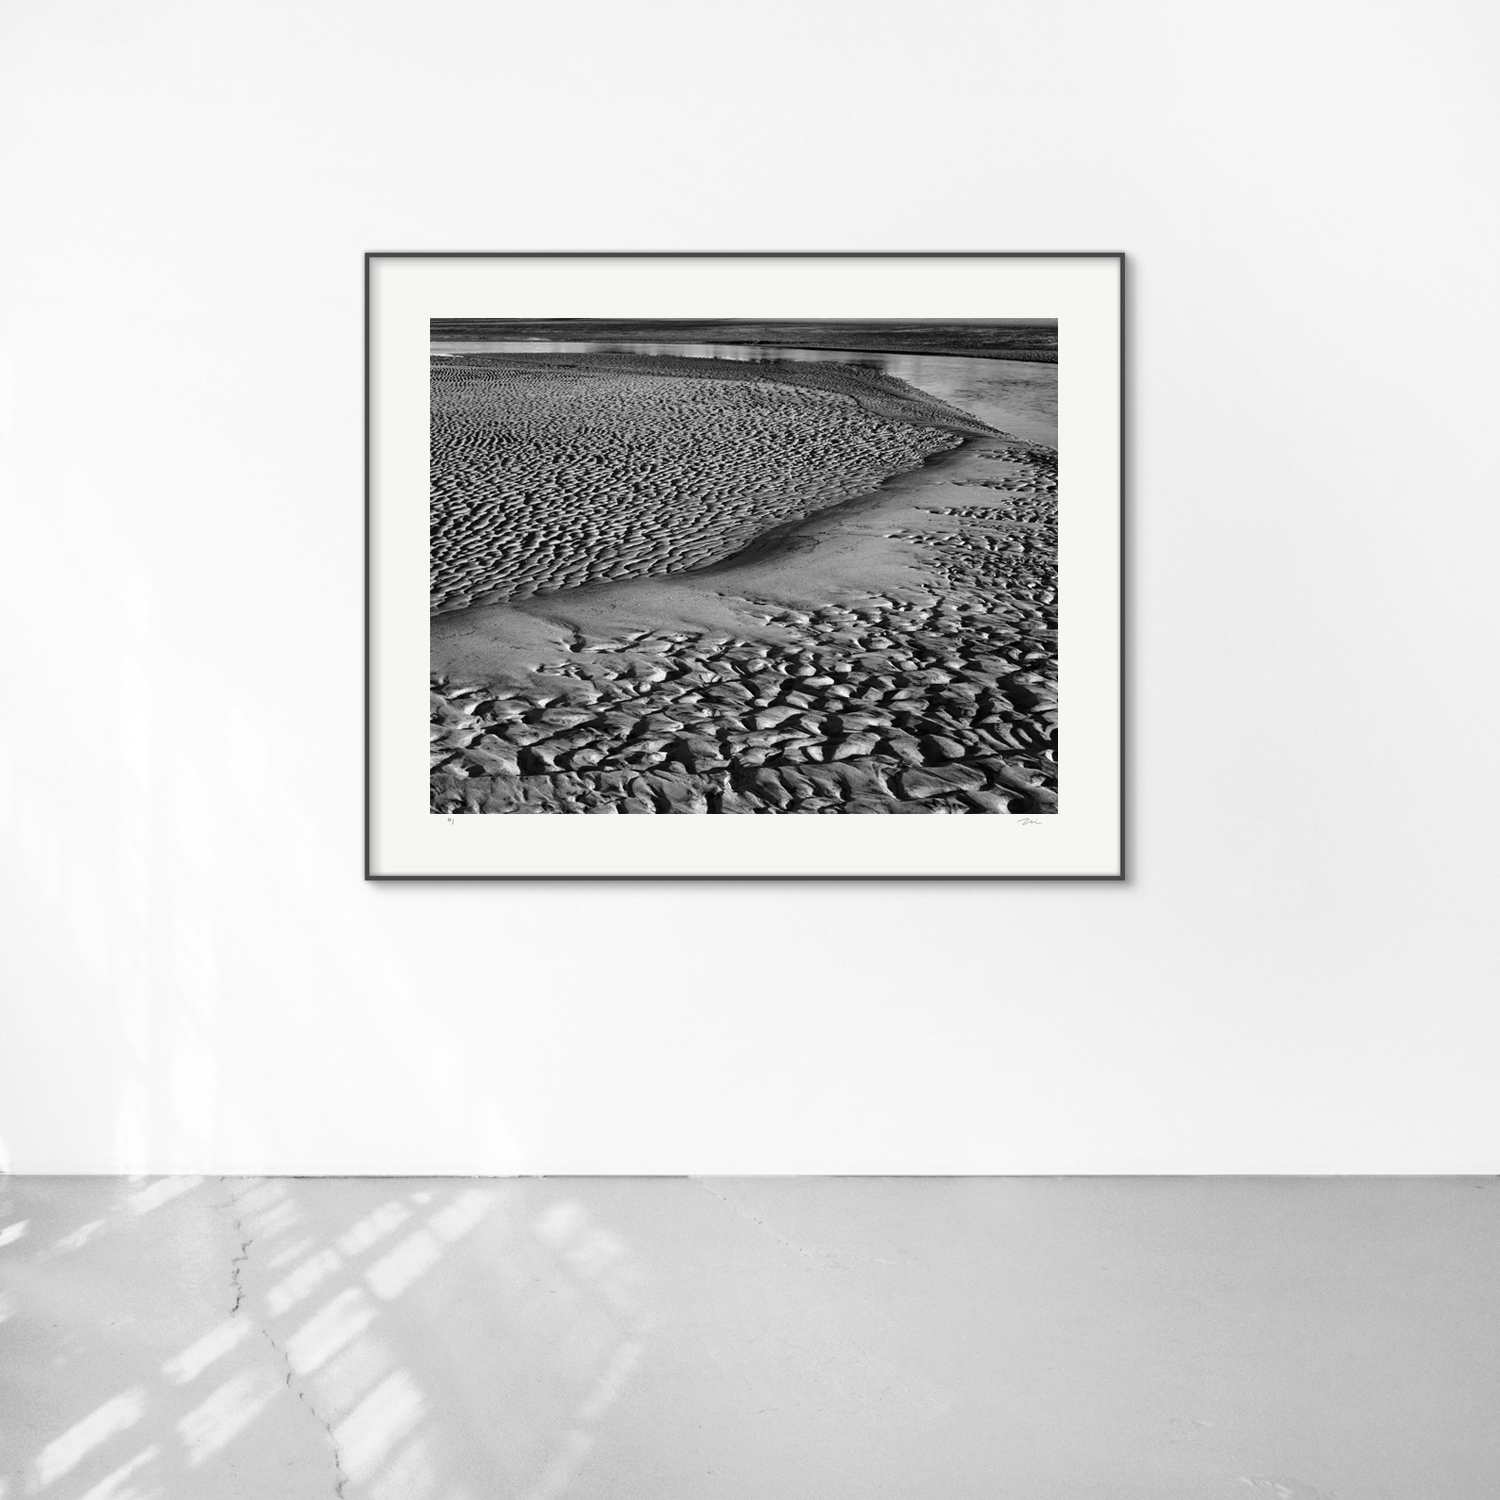 Shackleford II, 30x40, framed 38x48. Silver gelatin photograph.